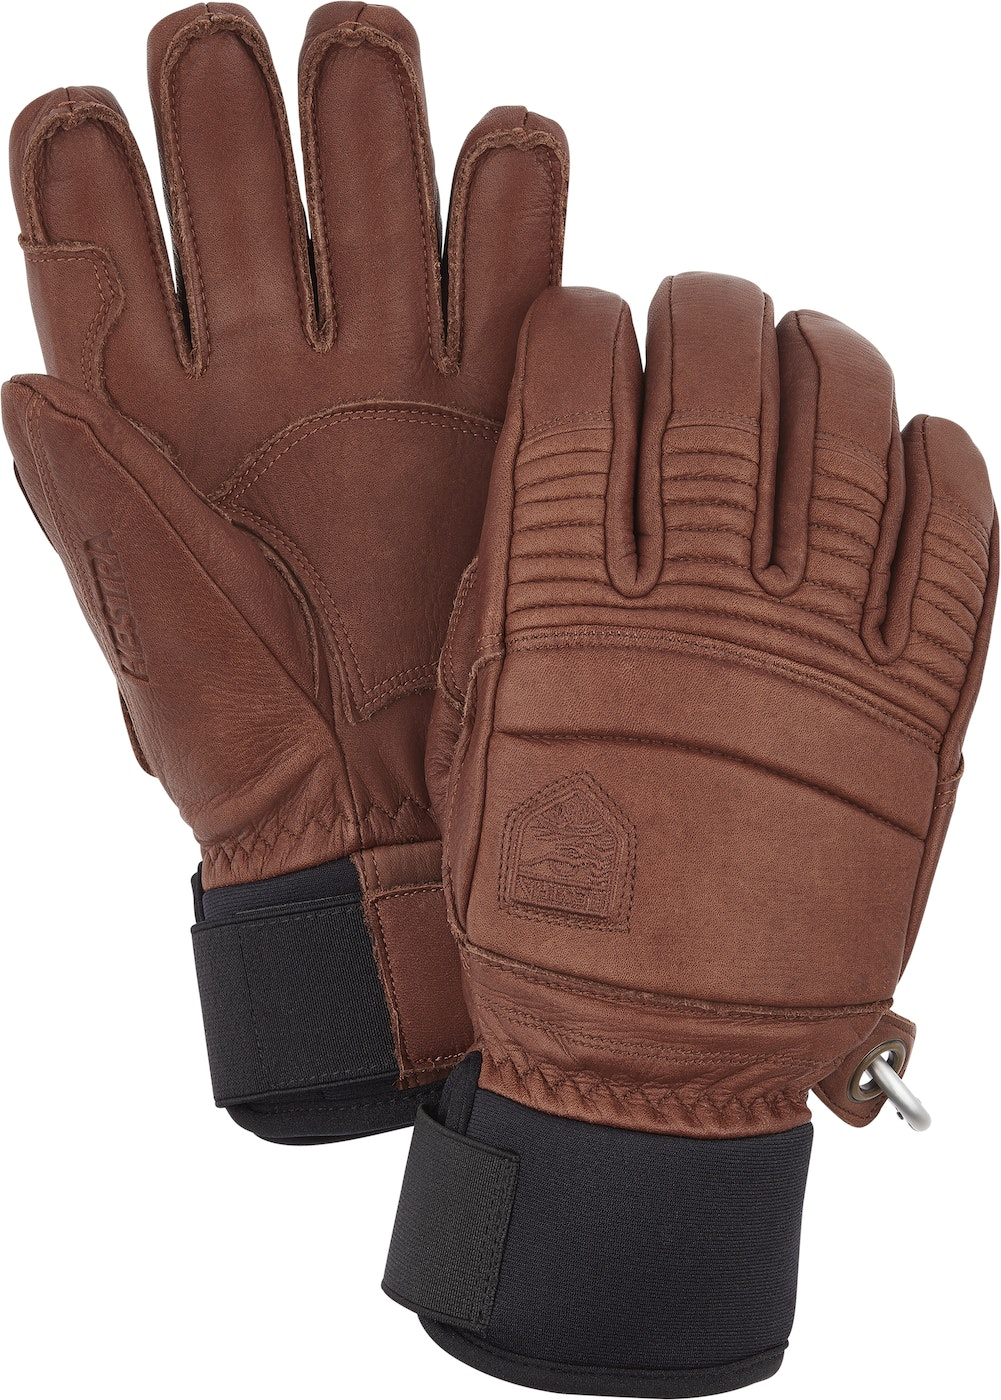 Product image for 31470 Leather Fall Line